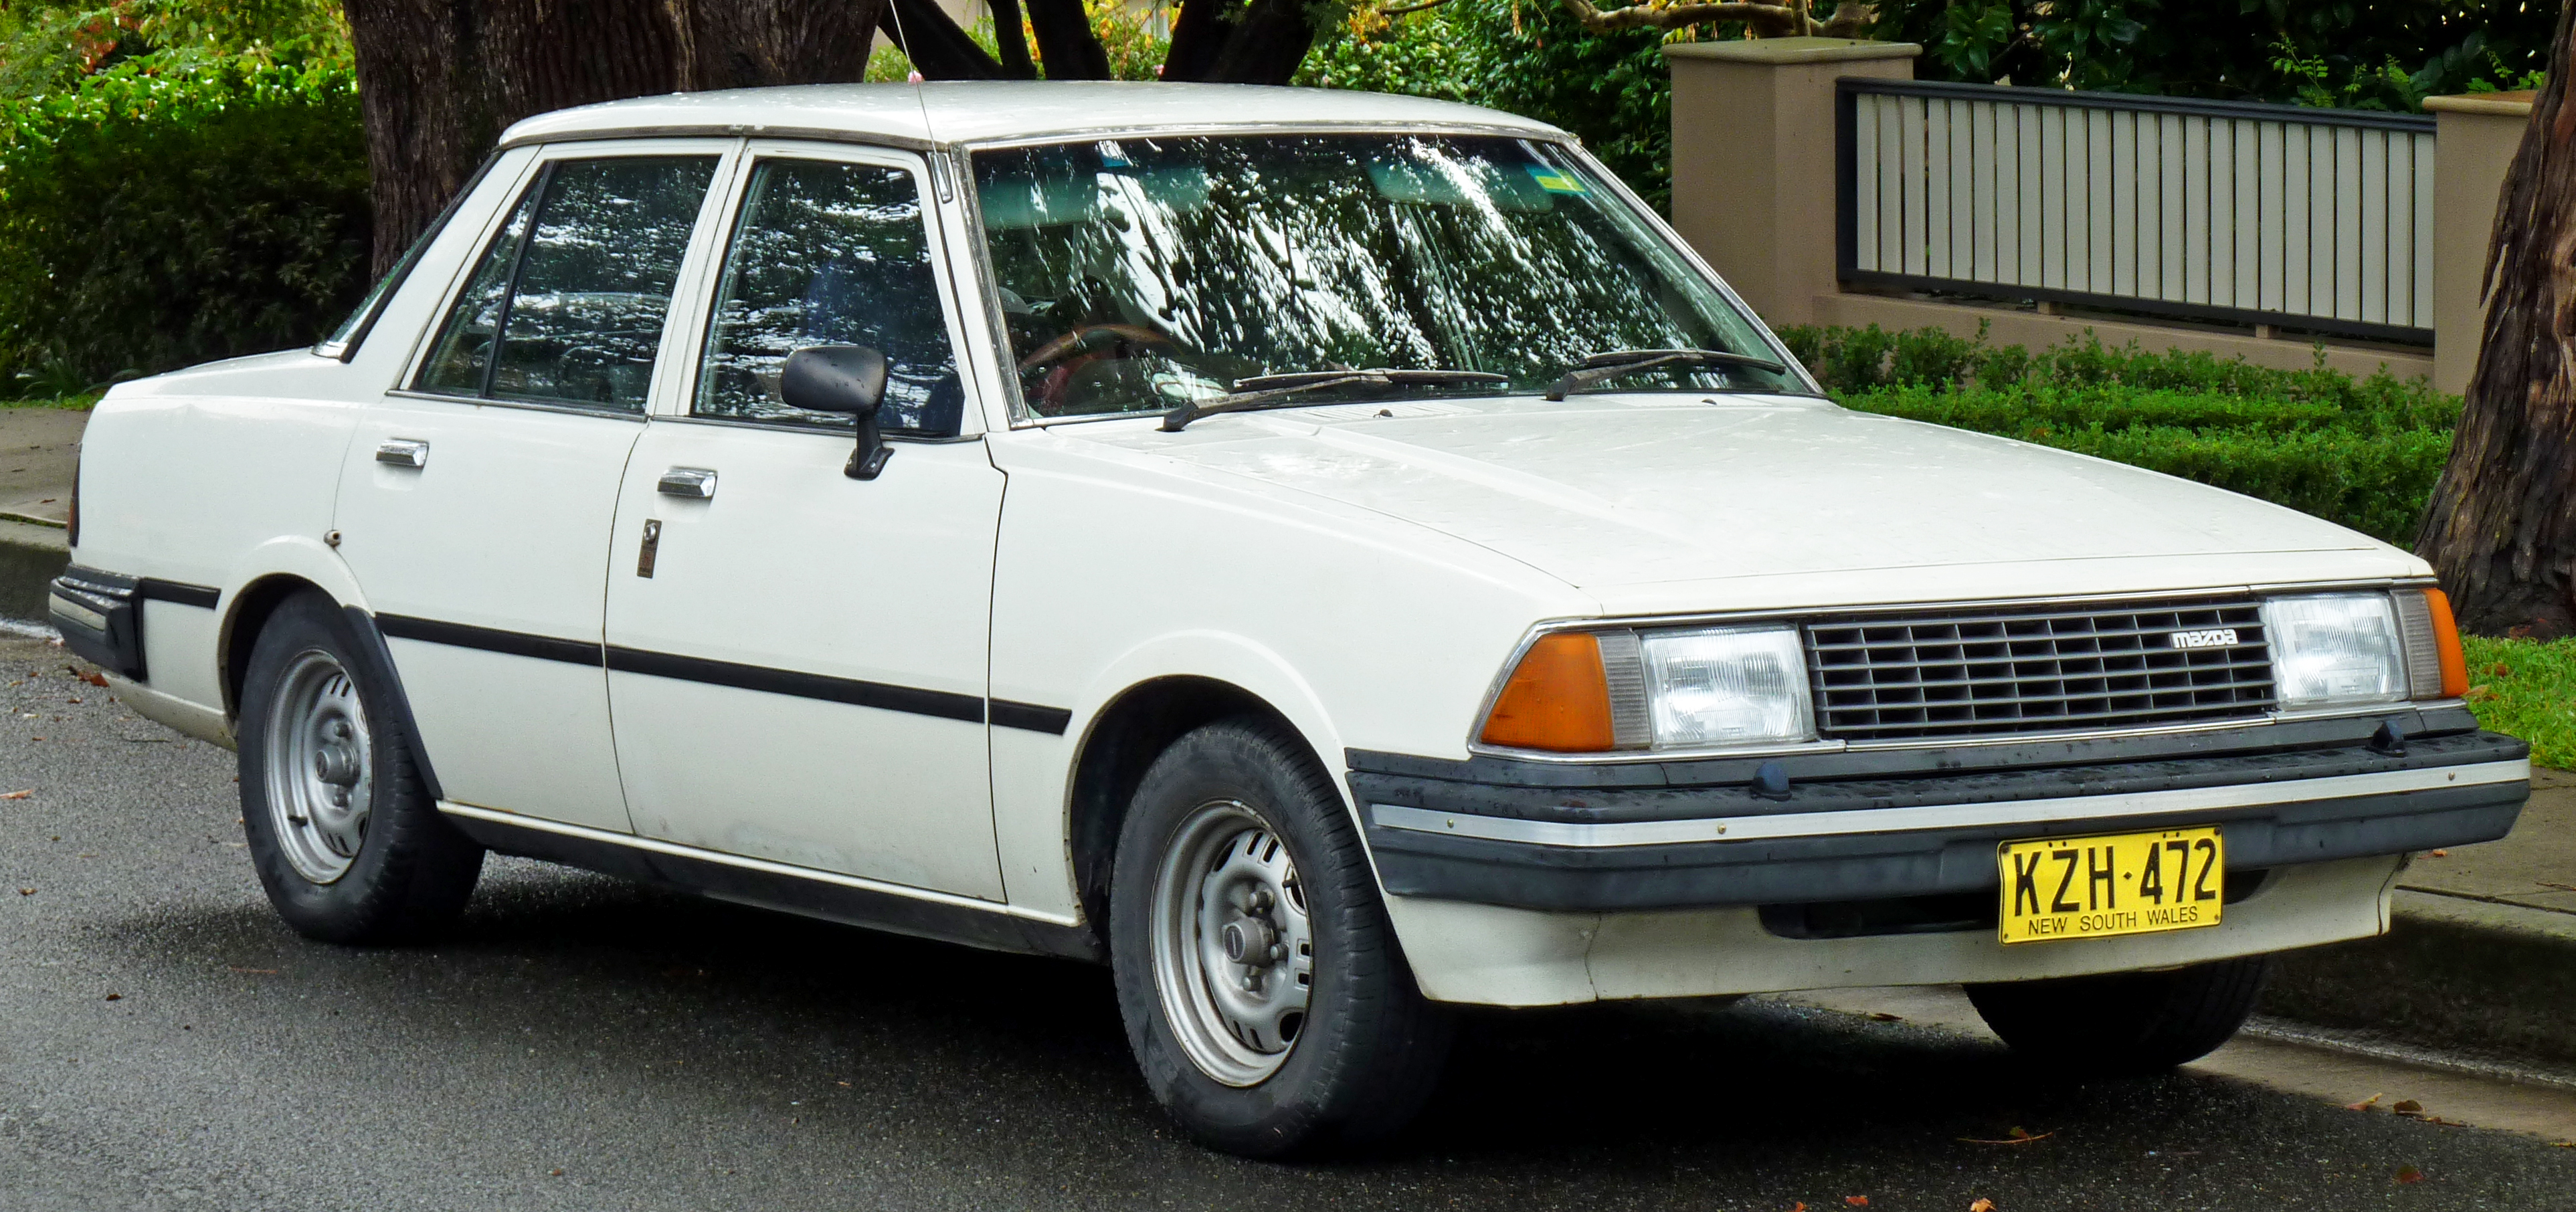 Mazda Capella 1982 photo - 2